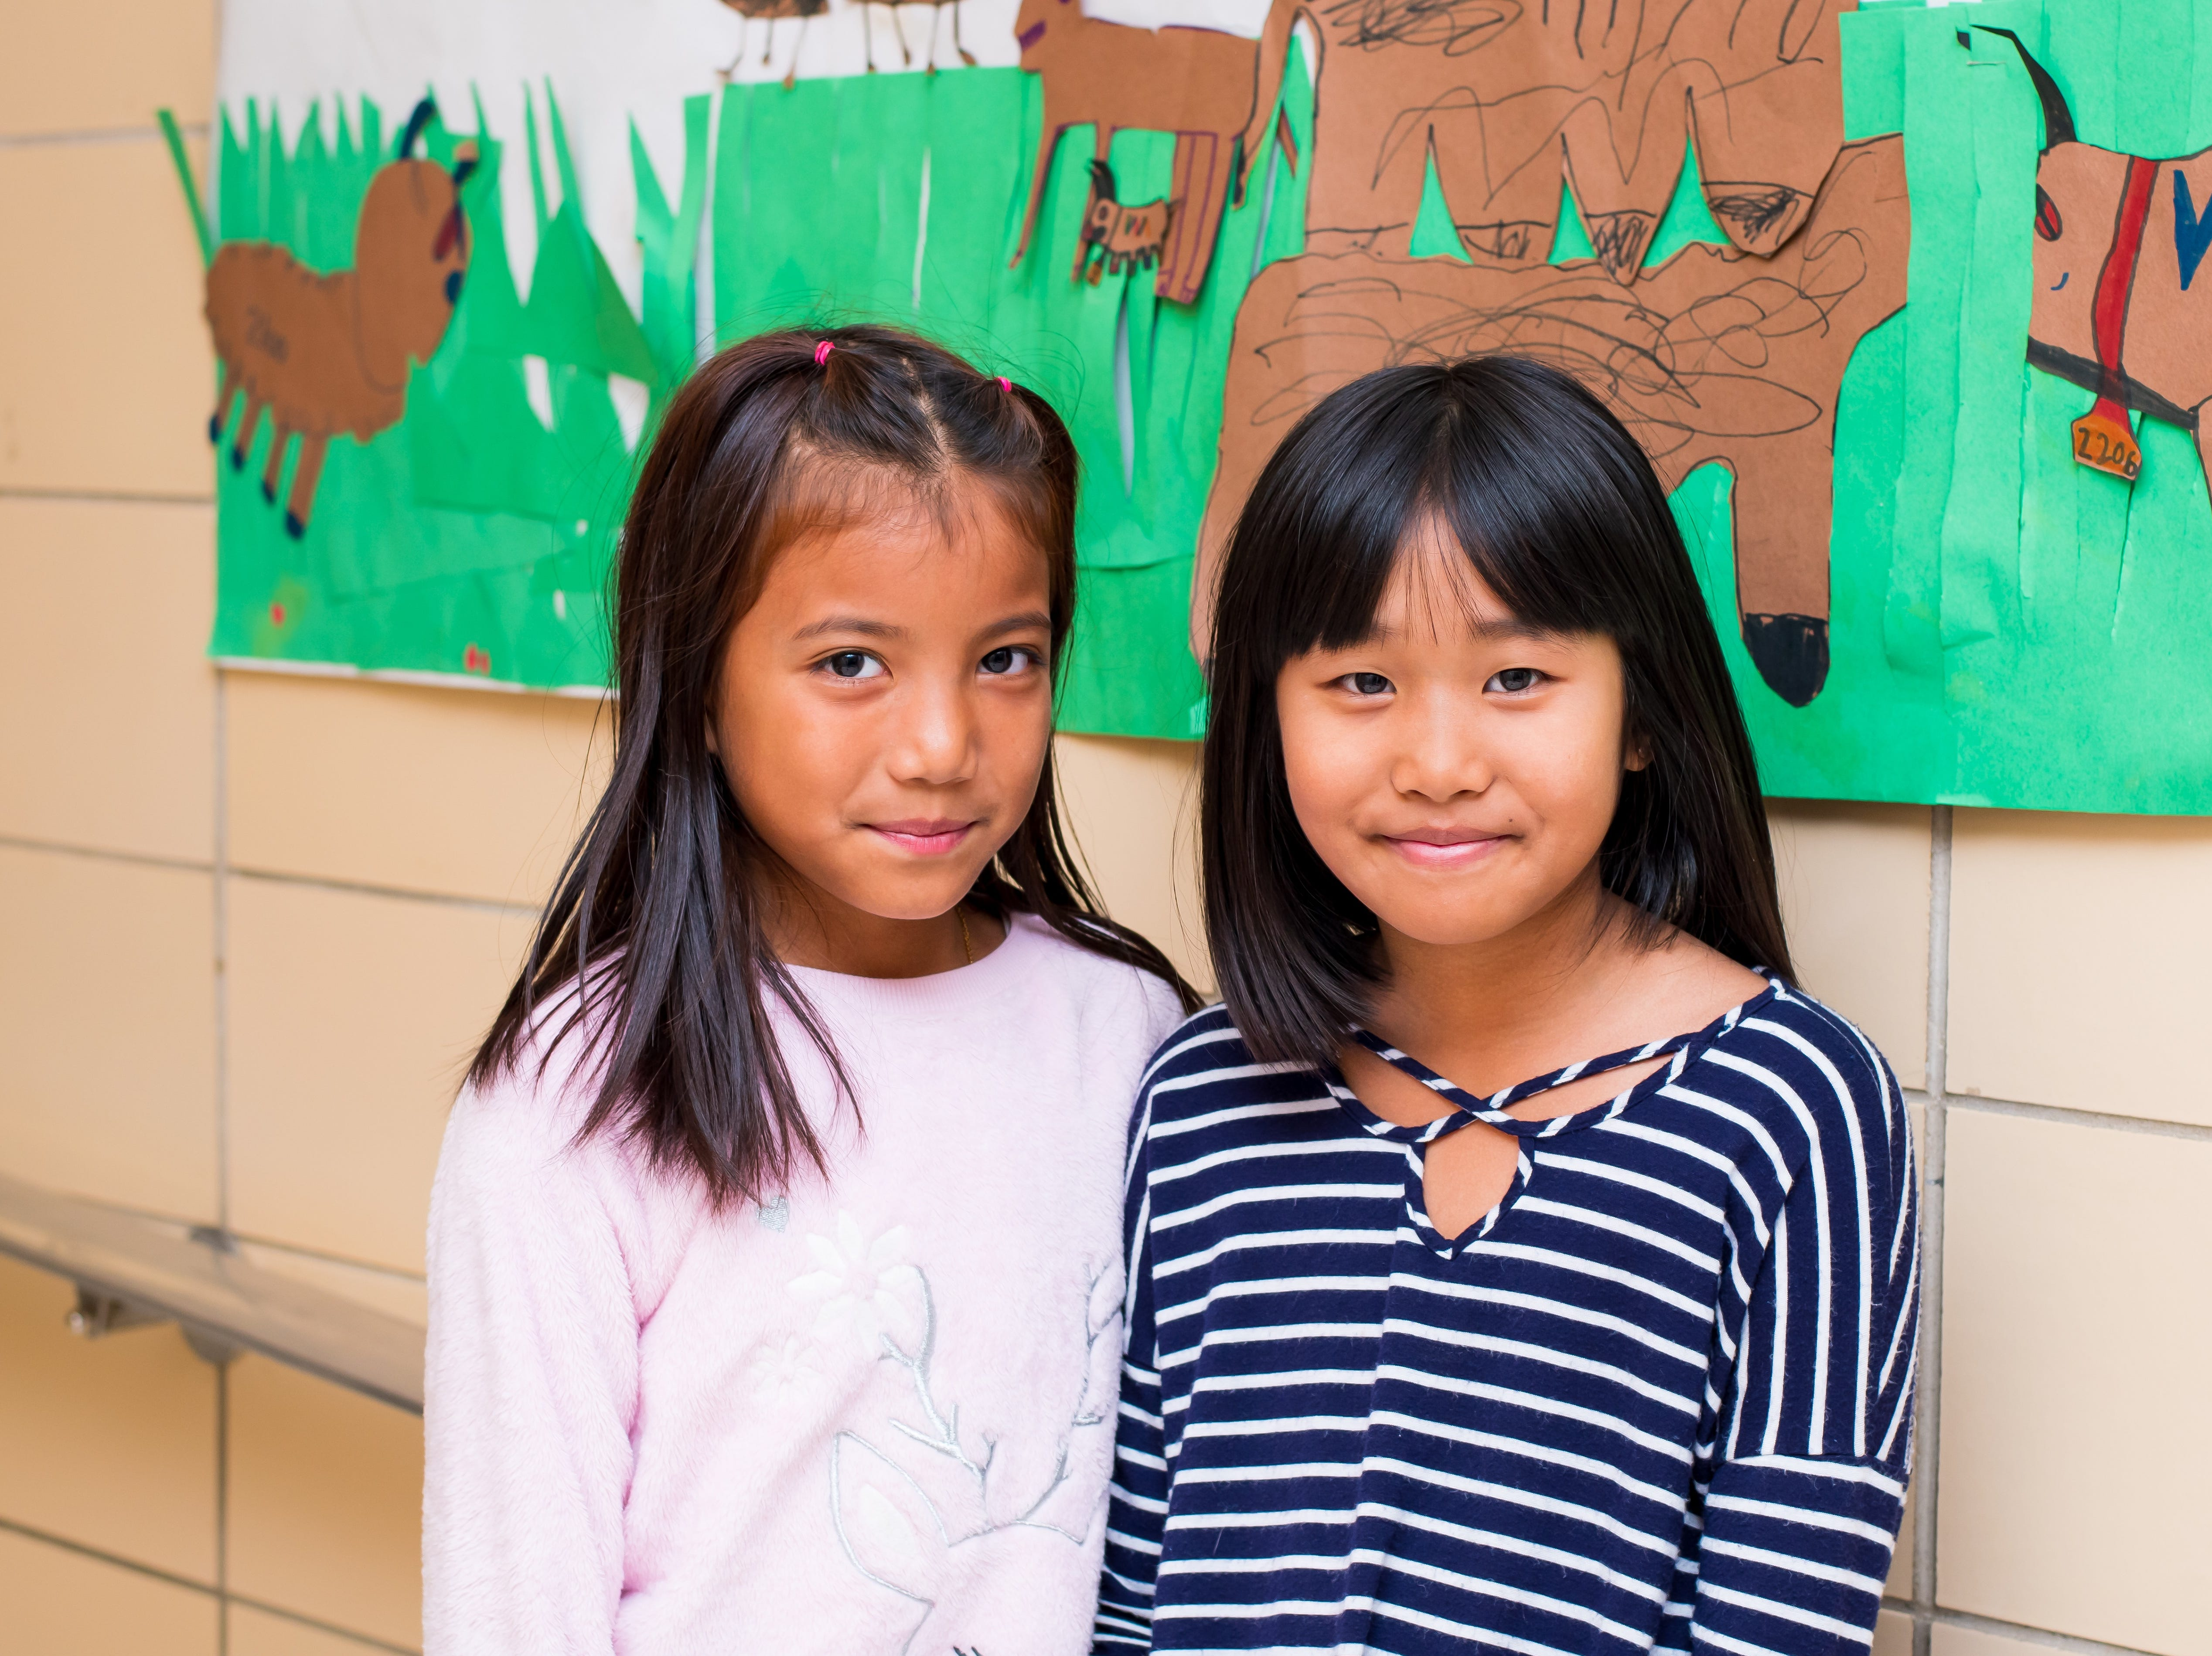 Nguntin Thluai, 9, and Esther Par, 9, both of Clive are ready to read their parts at the Celebrate Crestview event on Tuesday, Dec. 11, 2018 at Crestview School of Inquiry in Clive. Students learned the history of immigration in Clive and the impact it has had on Crestview.